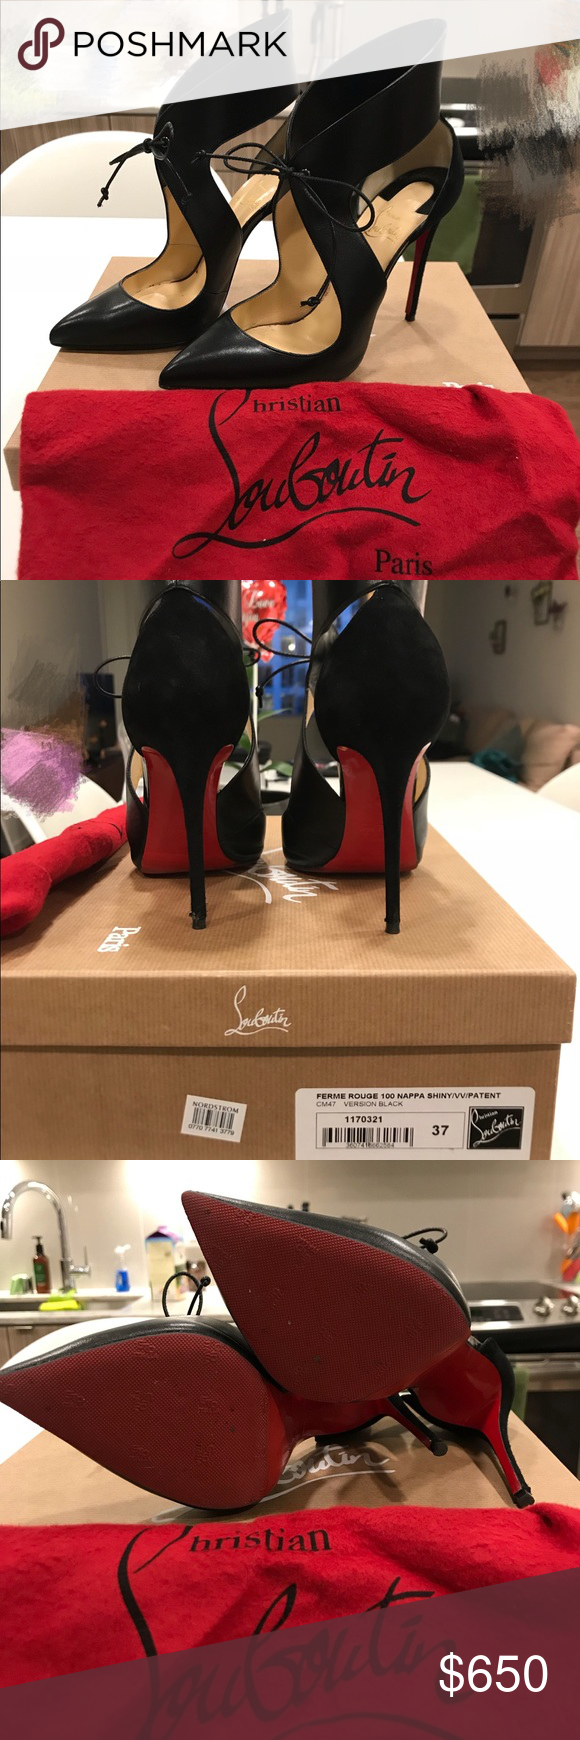 6dd4a1355d7 Christian Louboutin 100cm Heels Only worn twice. Bought from ...